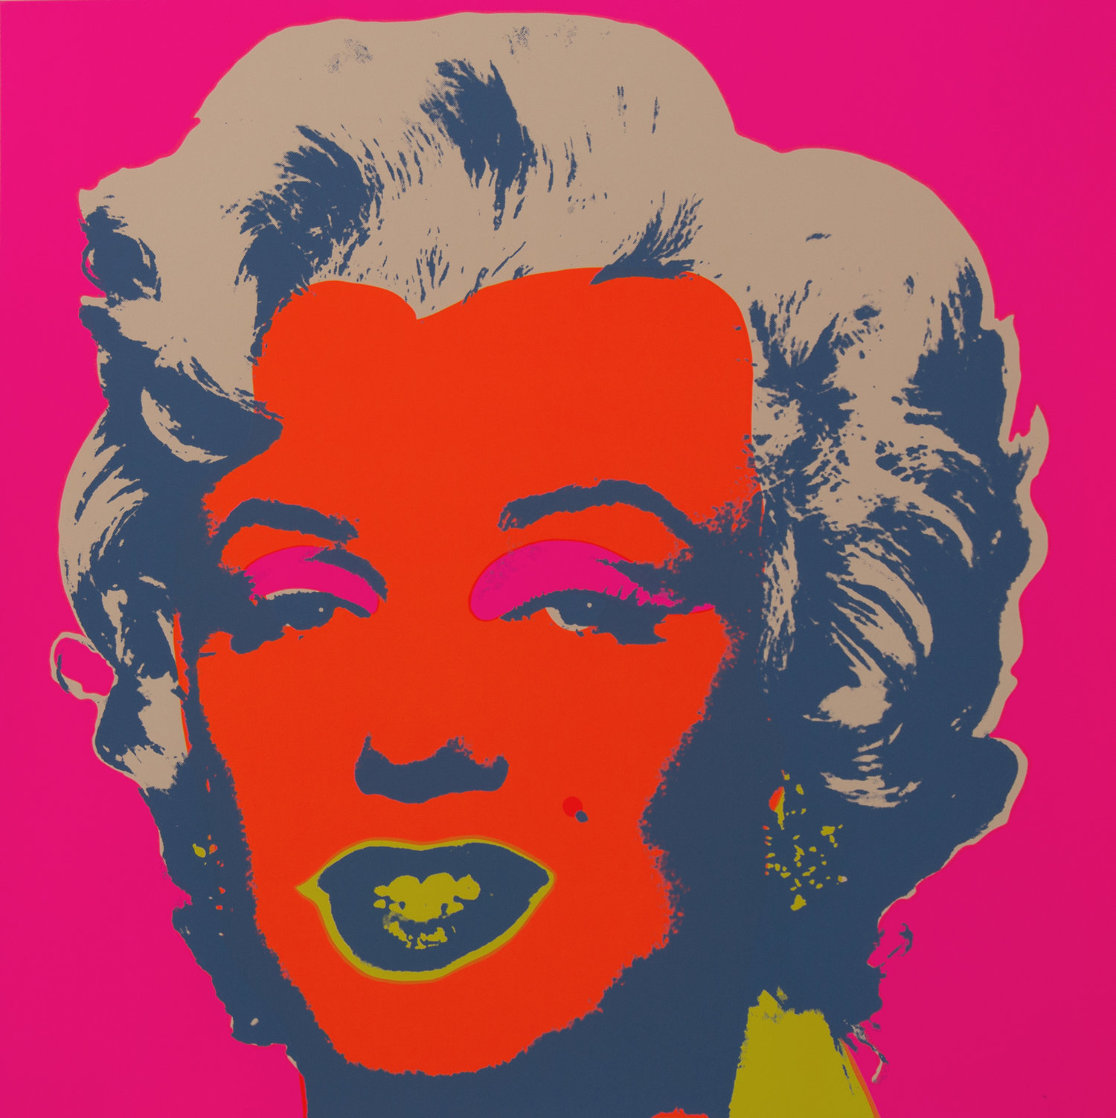 Sunday B Morning Marilyn Monroe Works on Paper (not prints) by Andy Warhol